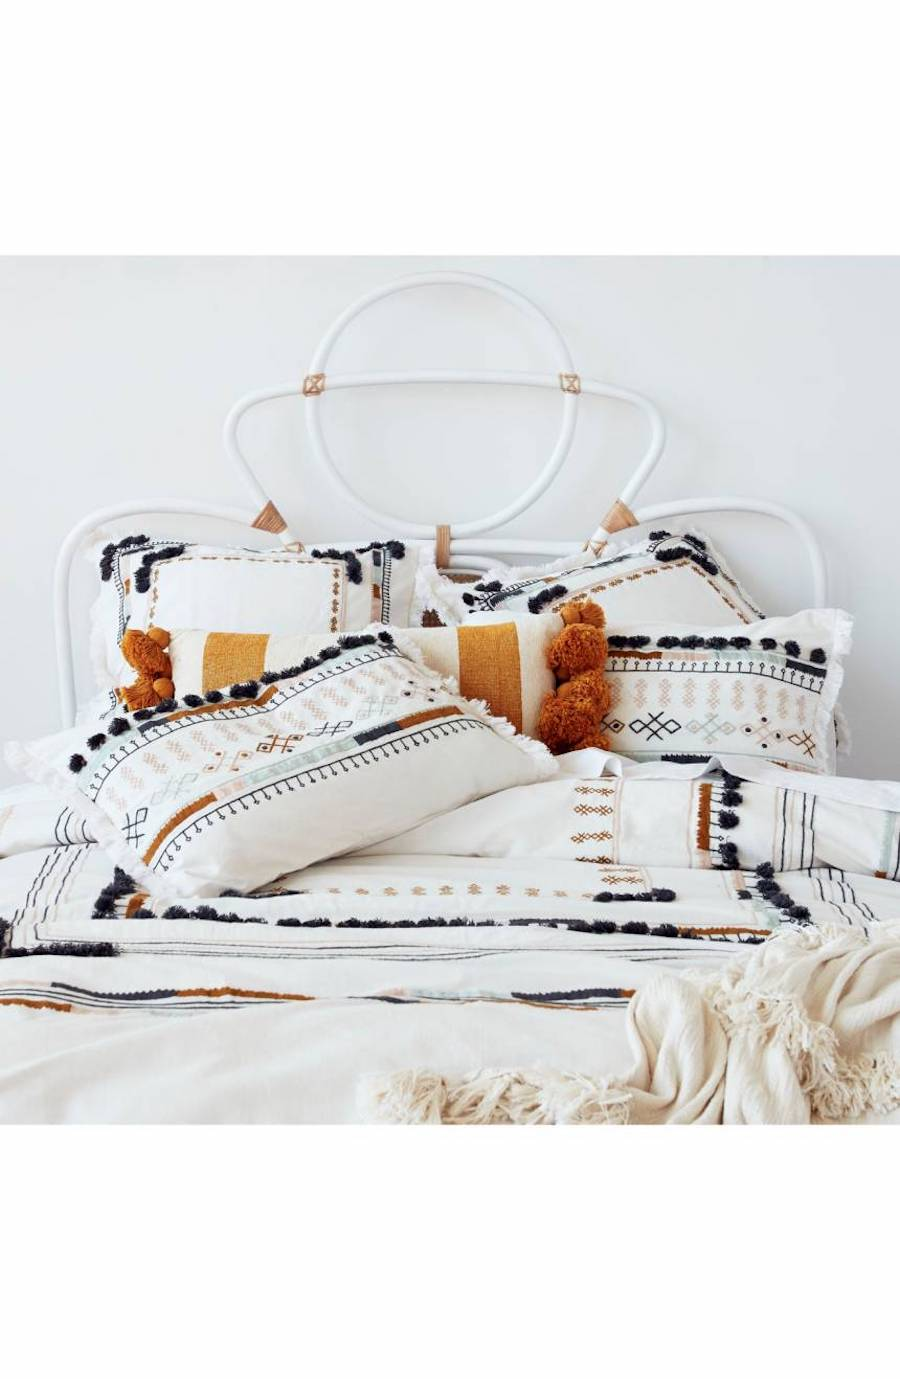 touch bag under definition cheap chinoiserie of comforters duvet size bedding stra queen comforter king inspired ikea ink walmart cl cover bible brands bed mysa sets nordstrom luxury in french a loire collections top ronn bedroom dwellstudio